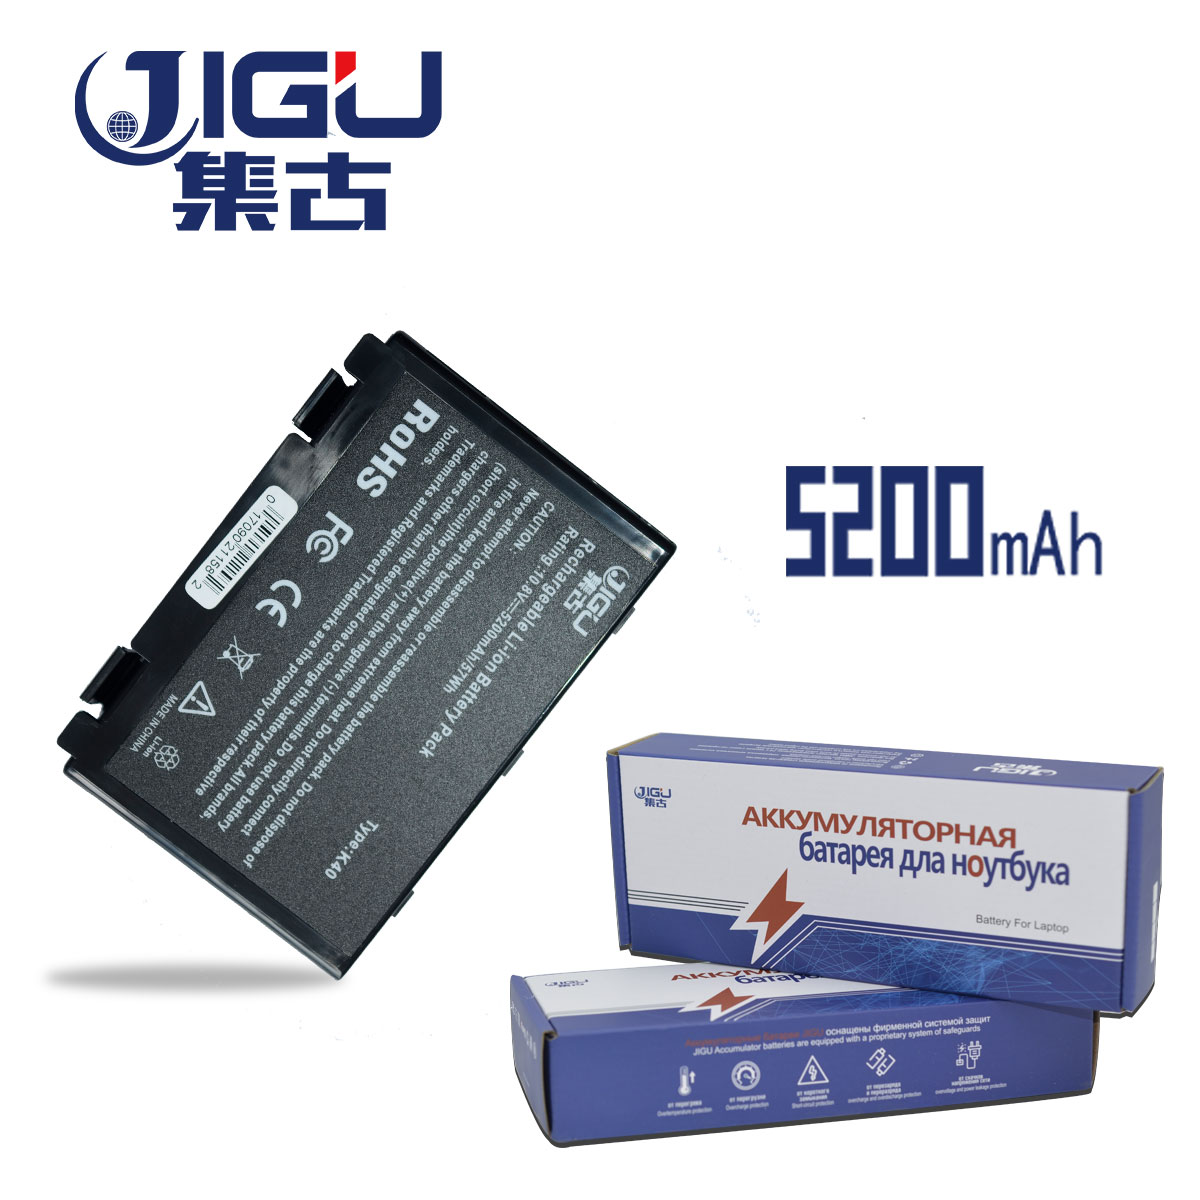 JIGU K50in  6 Cell Battery Pack For Asus K40 / F82 / A32 / F52 / K50 / K60 L0690L6 A32-F82 K40in K40af K50ijJIGU K50in  6 Cell Battery Pack For Asus K40 / F82 / A32 / F52 / K50 / K60 L0690L6 A32-F82 K40in K40af K50ij